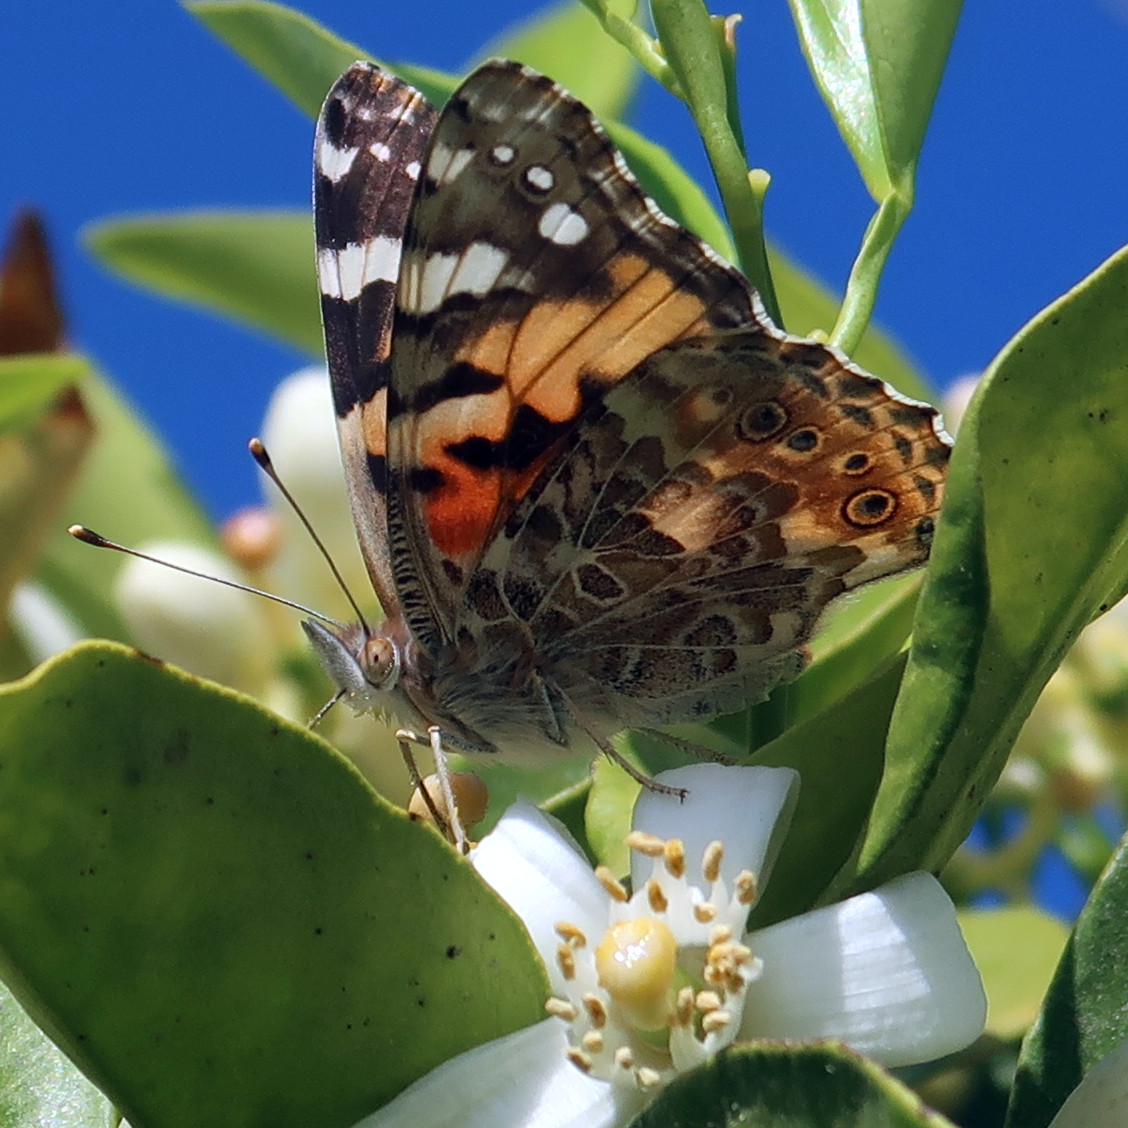 Painted Lady (Vanessa cardui) on an Orange blossom, southern California